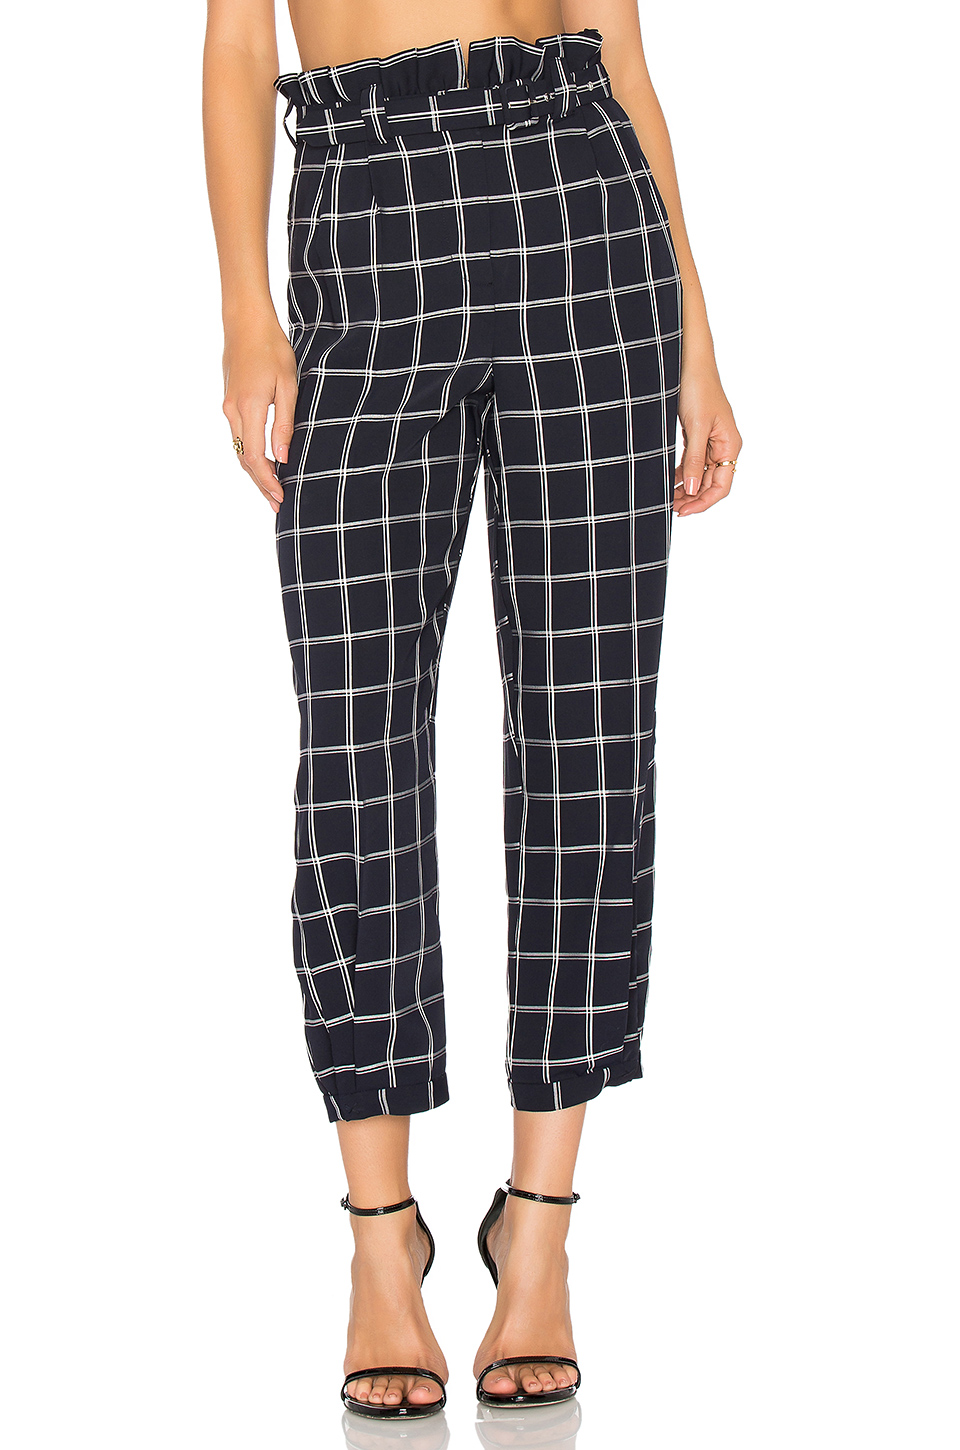 ELIZABETH AND JAMES 'FRITZ' PLAID PANTS